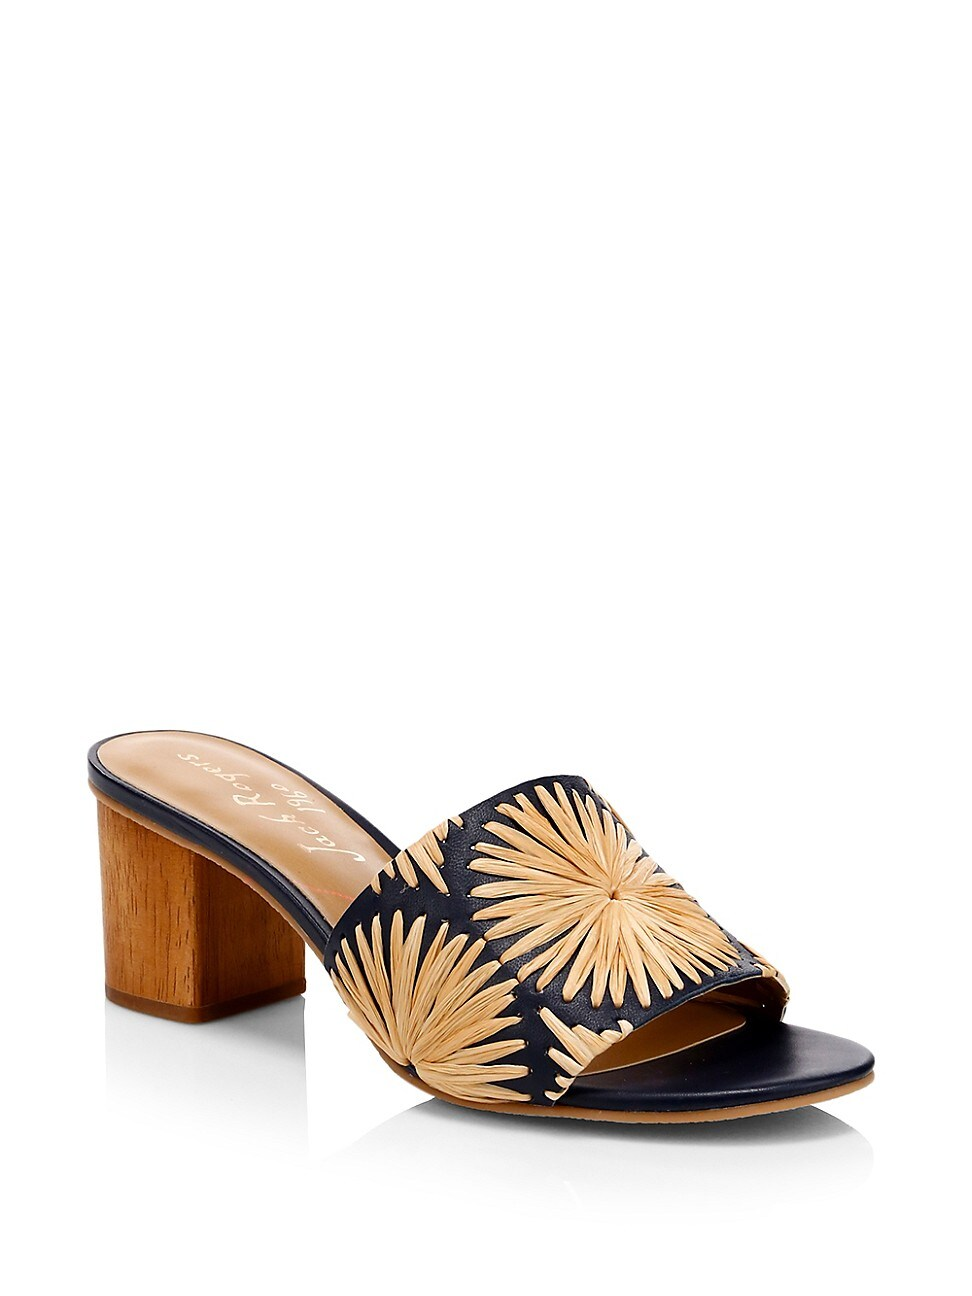 Chic raffia mules with a pretty floral design. Raffia/straw upper Slip-on style Open toe Leather sole Imported SIZE & FIT Heel, 2\\\